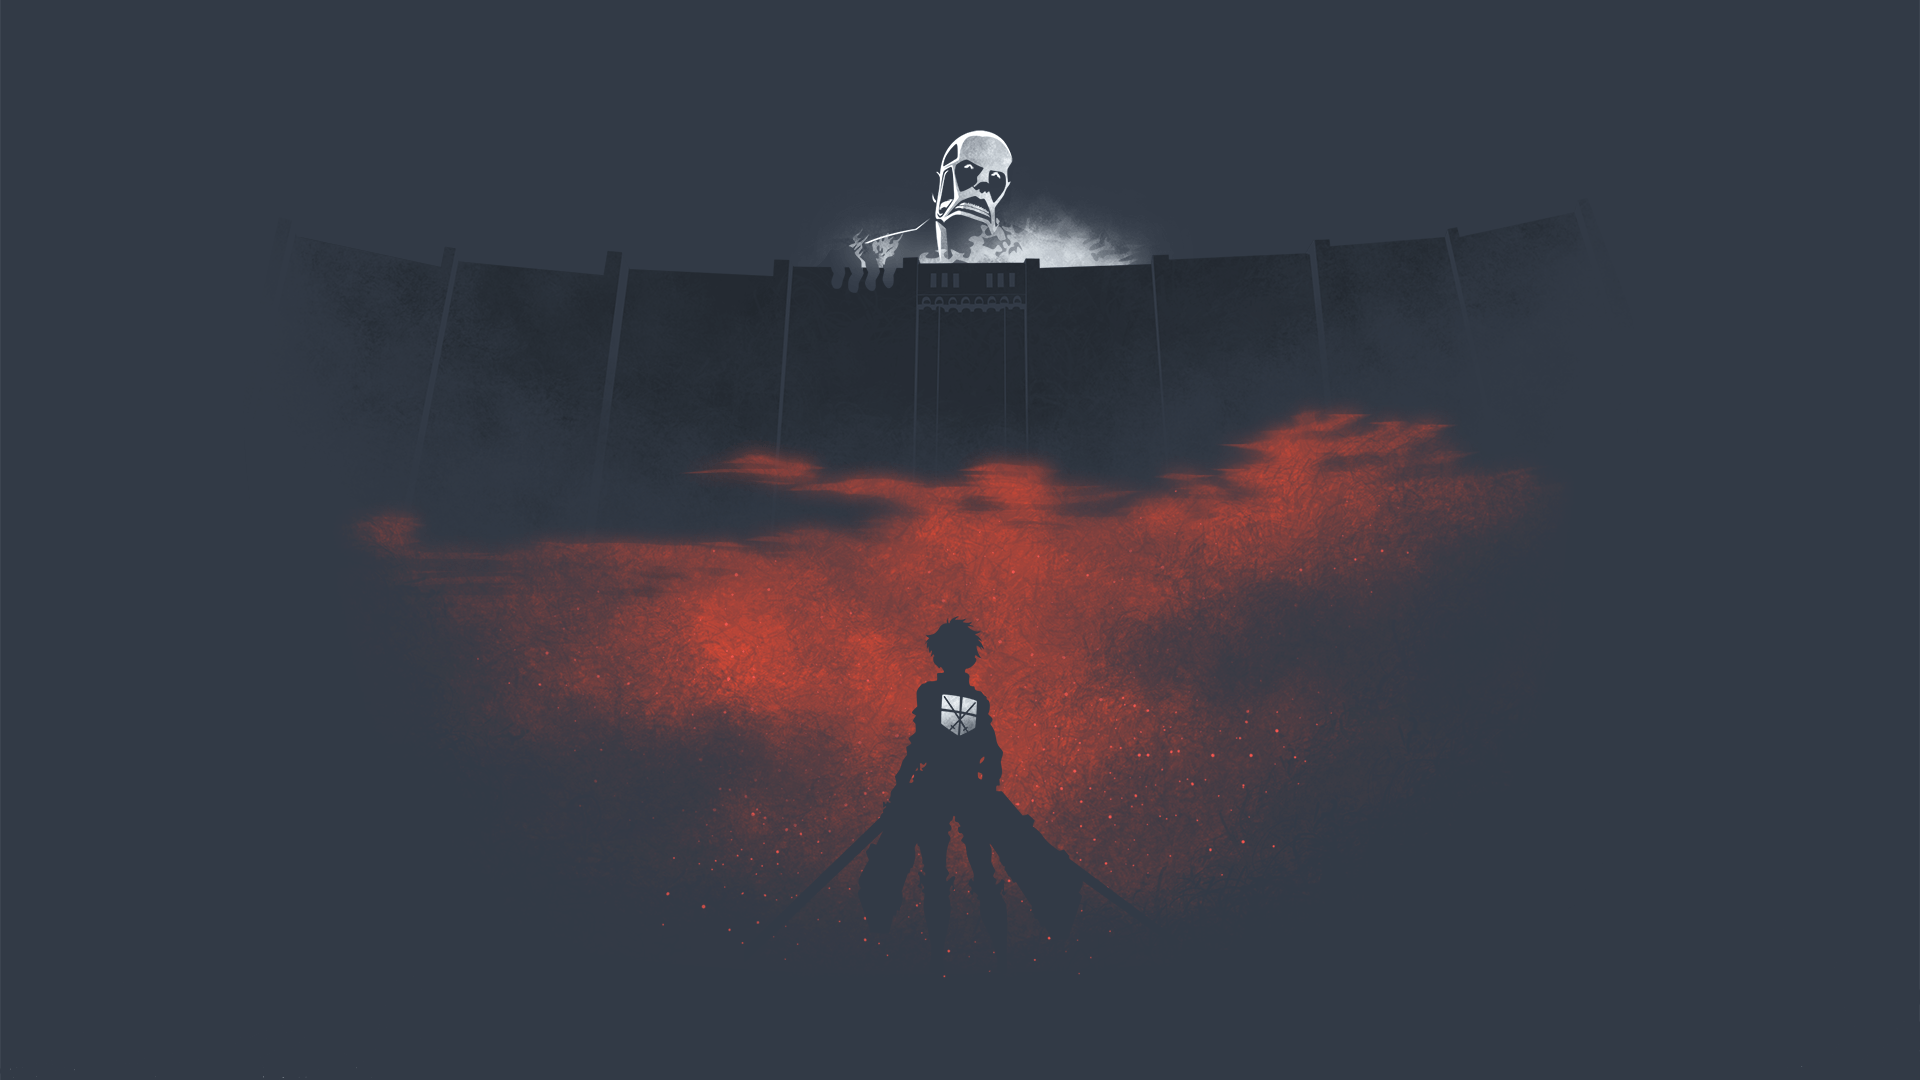 Attack On Titan Minimalist Wallpapers Top Free Attack On Titan Minimalist Backgrounds Wallpaperaccess